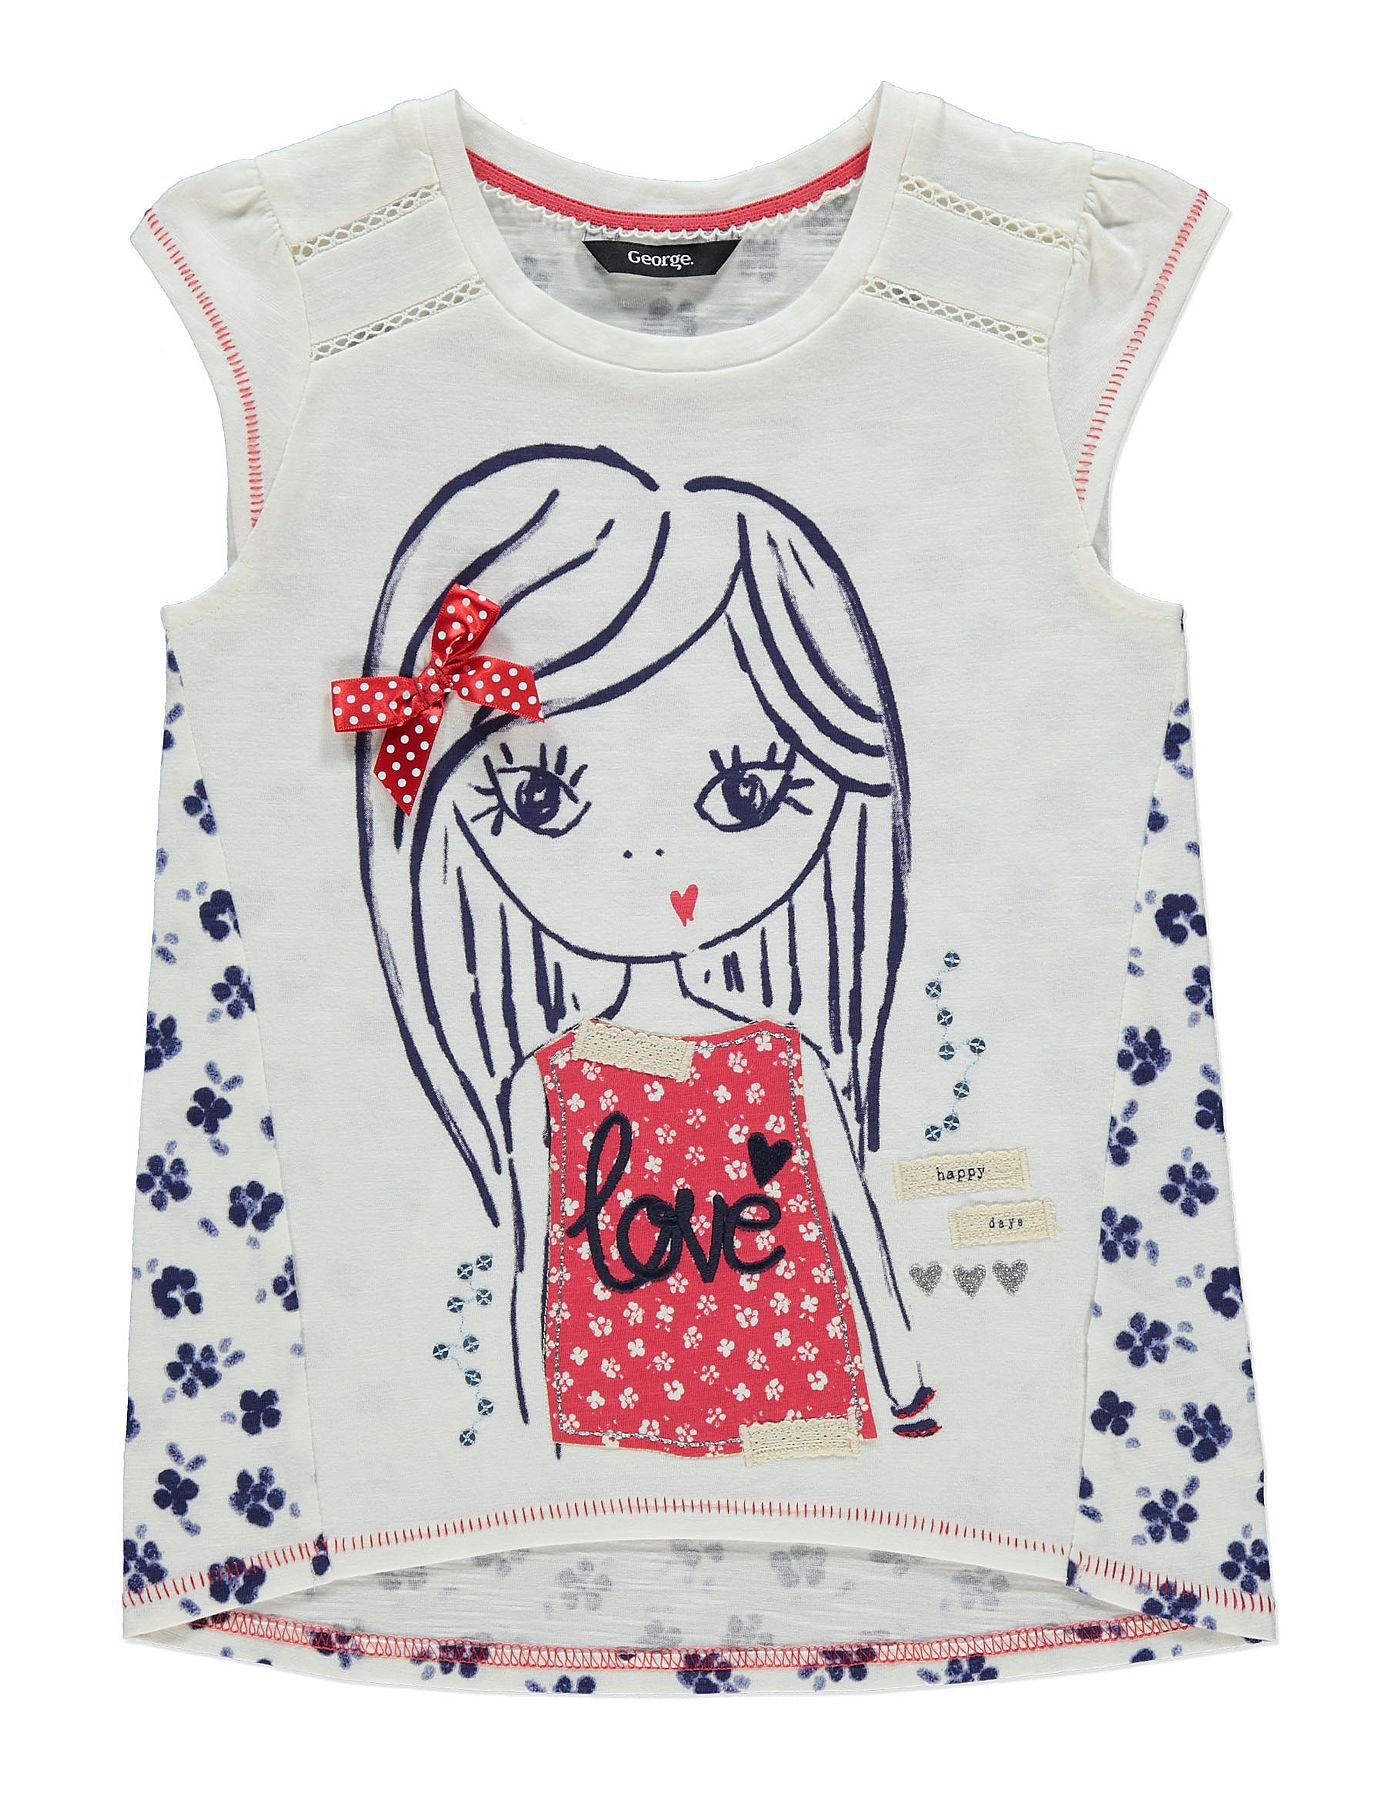 Maritime Girl Tshirt Kids at ASDA tshirt